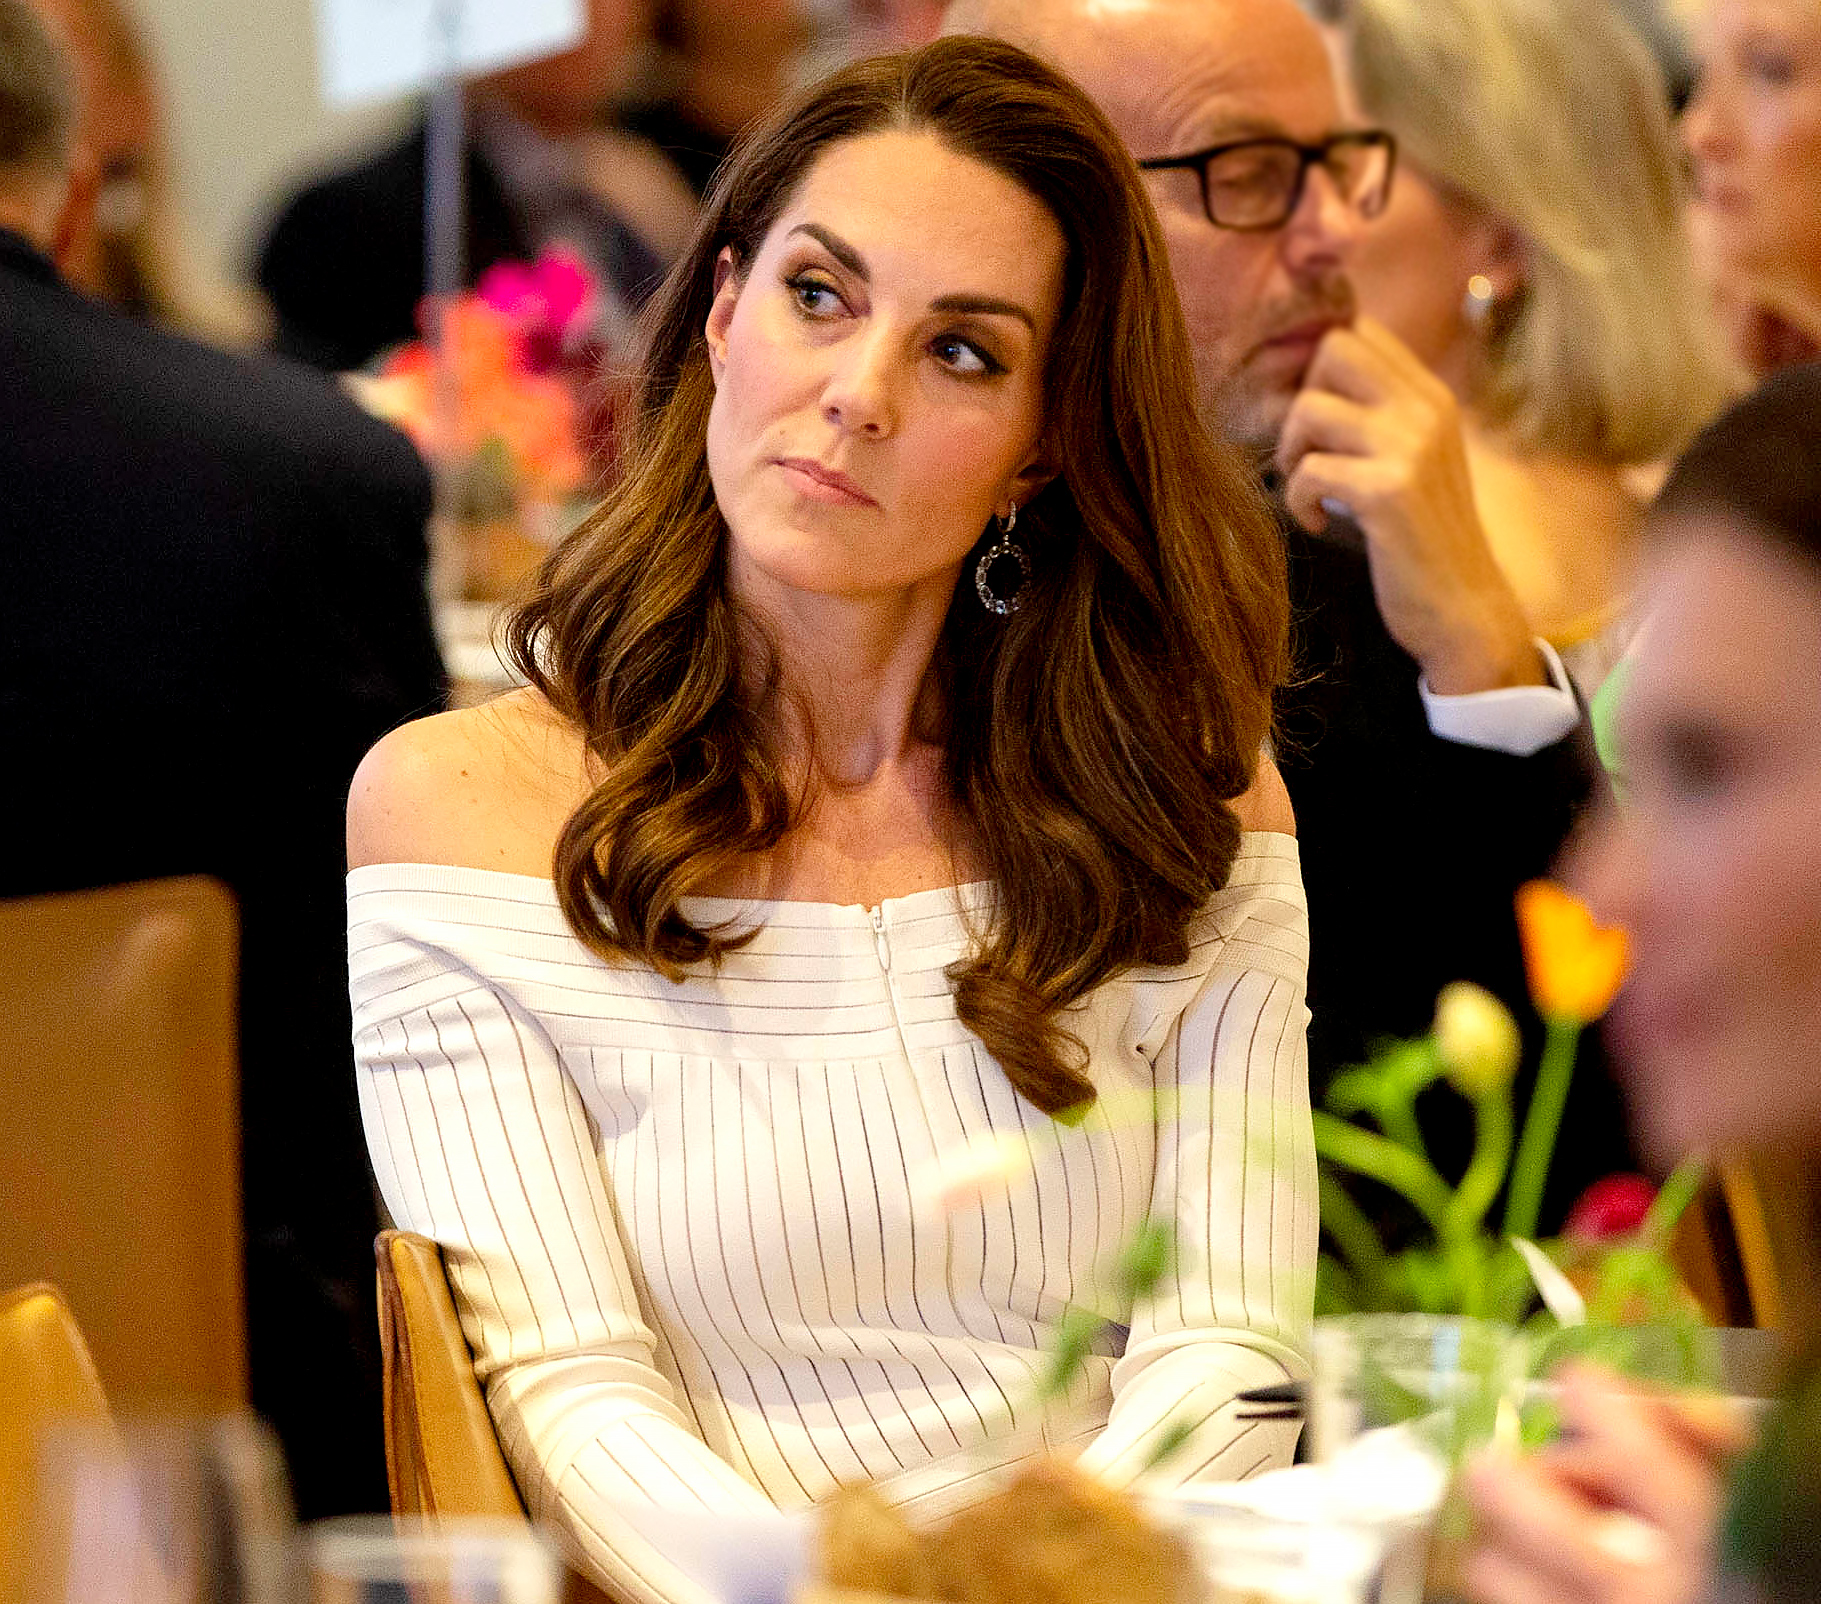 Kensington Palace Responds to False Report About Duchess Kate Feeling Exhausted and Trapped